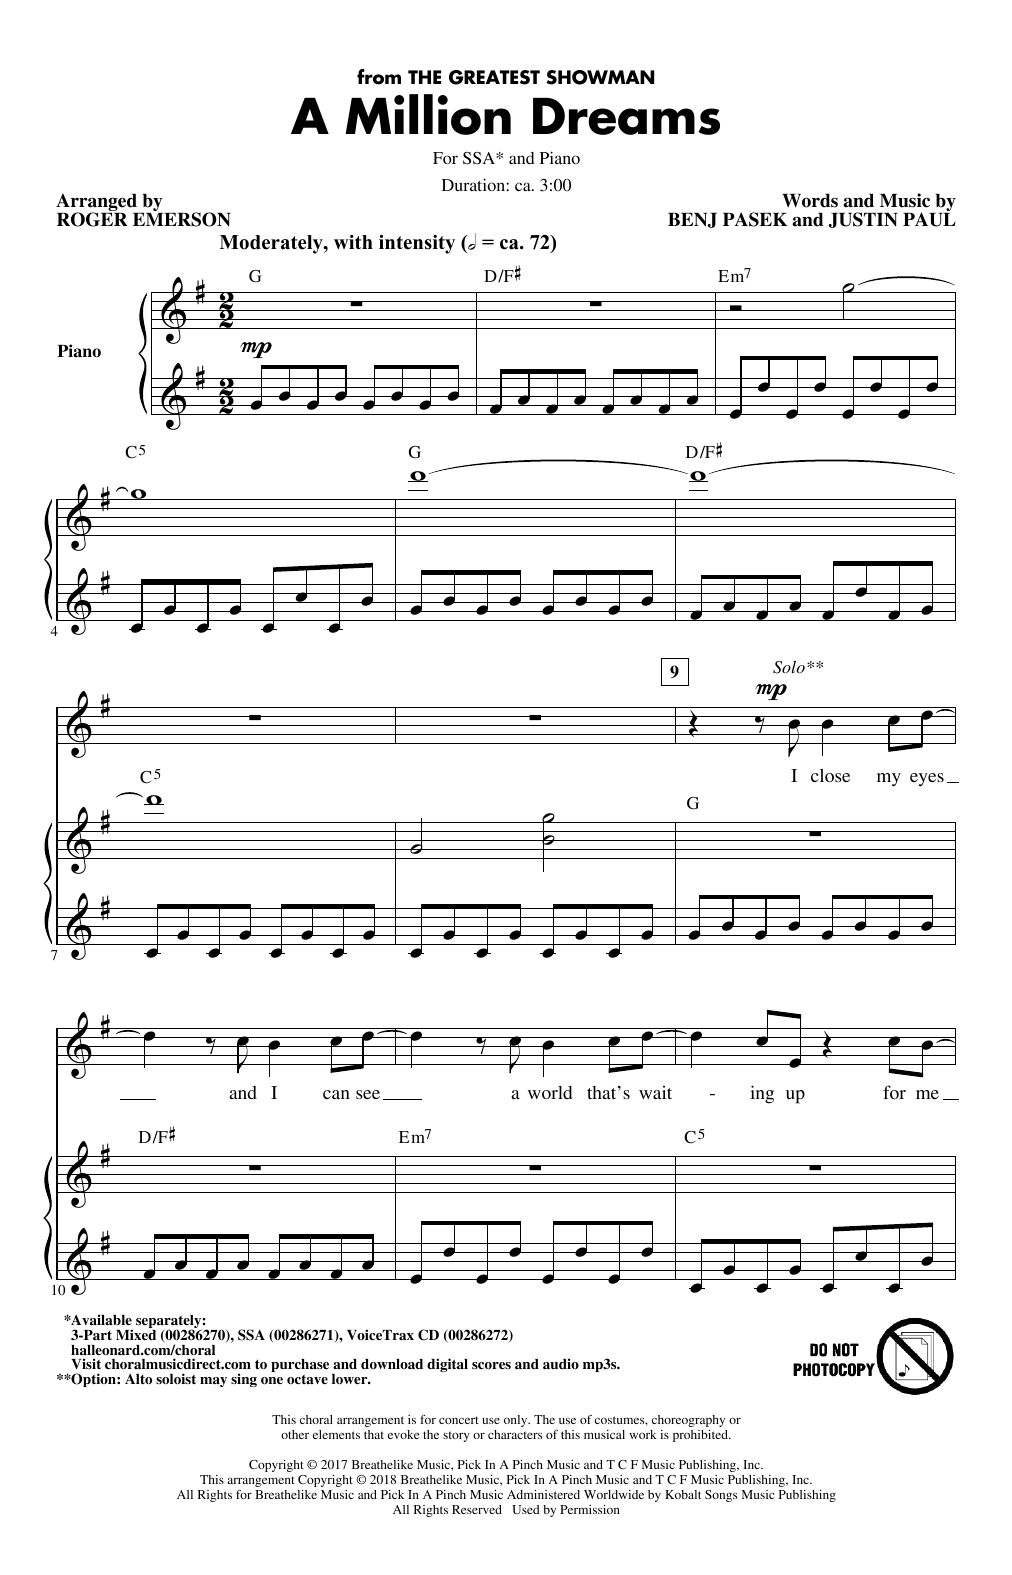 Pasek & Paul 'A Million Dreams (from The Greatest Showman) (arr  Roger  Emerson)' Sheet Music Notes, Chords | Download Printable SSA Choir - SKU: